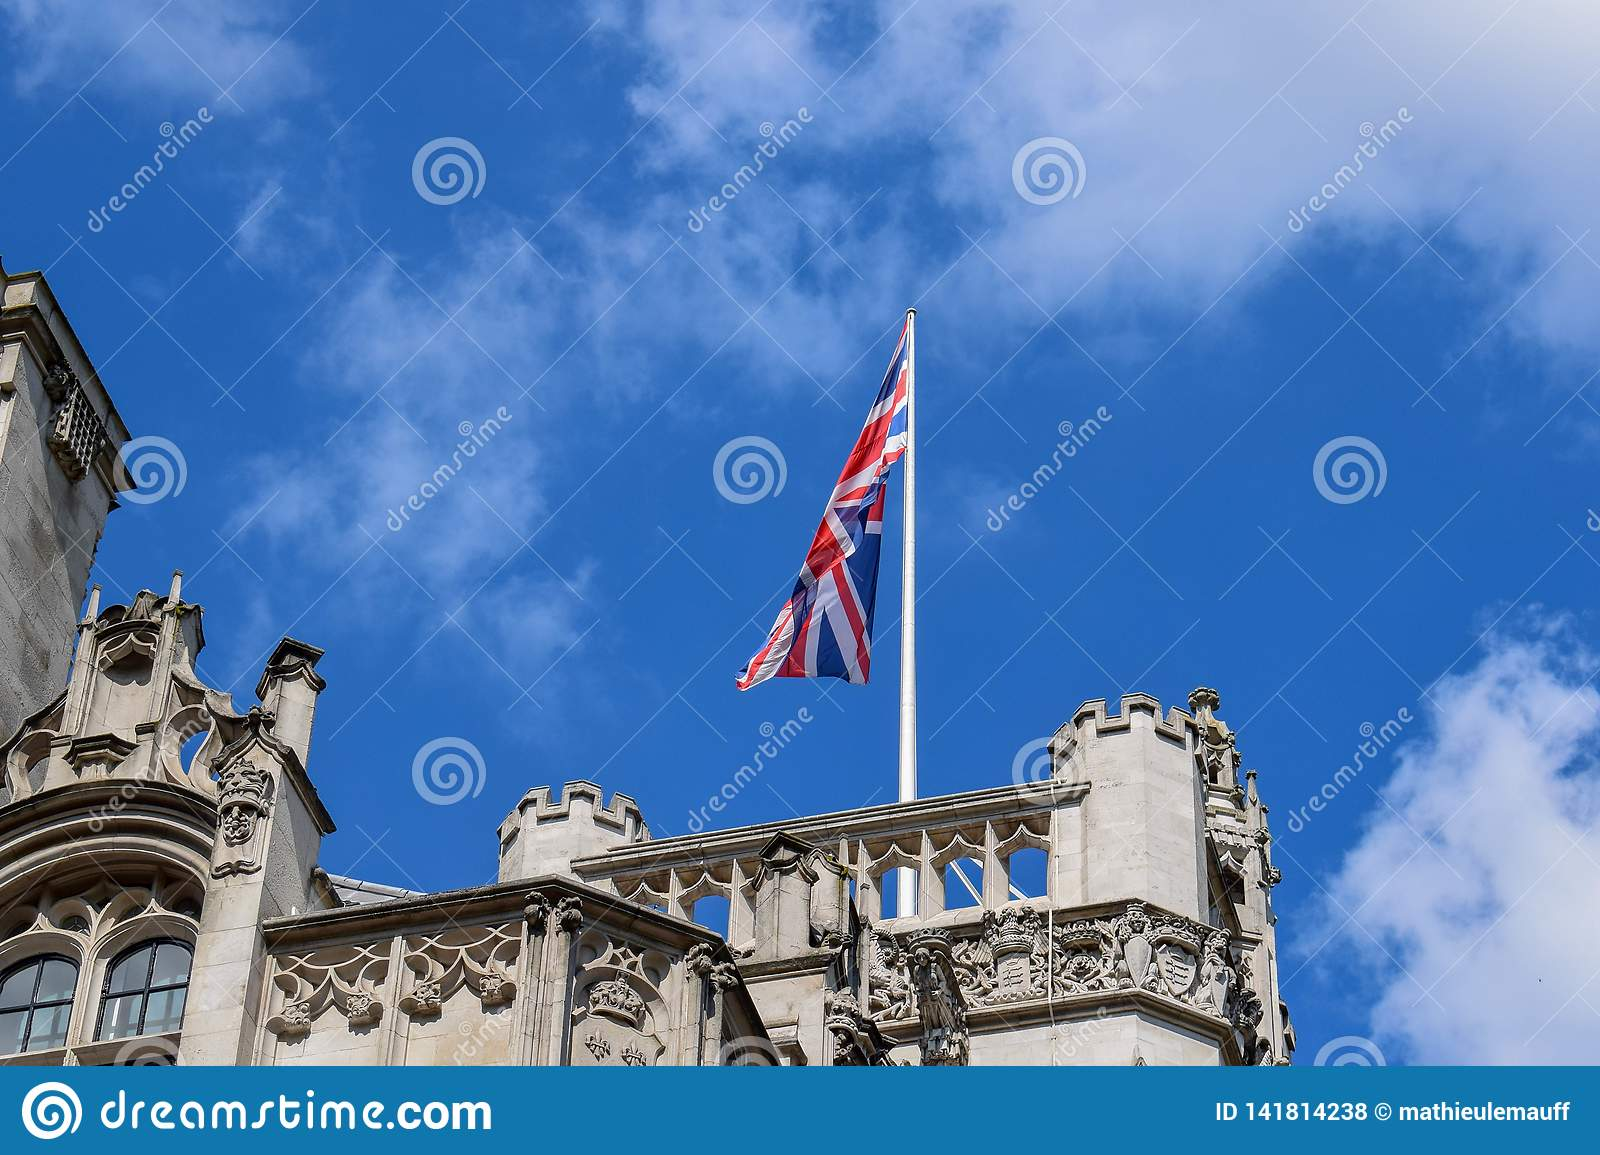 Union Flag (Union Jack) Waving in the Wind on a Rooftop in London